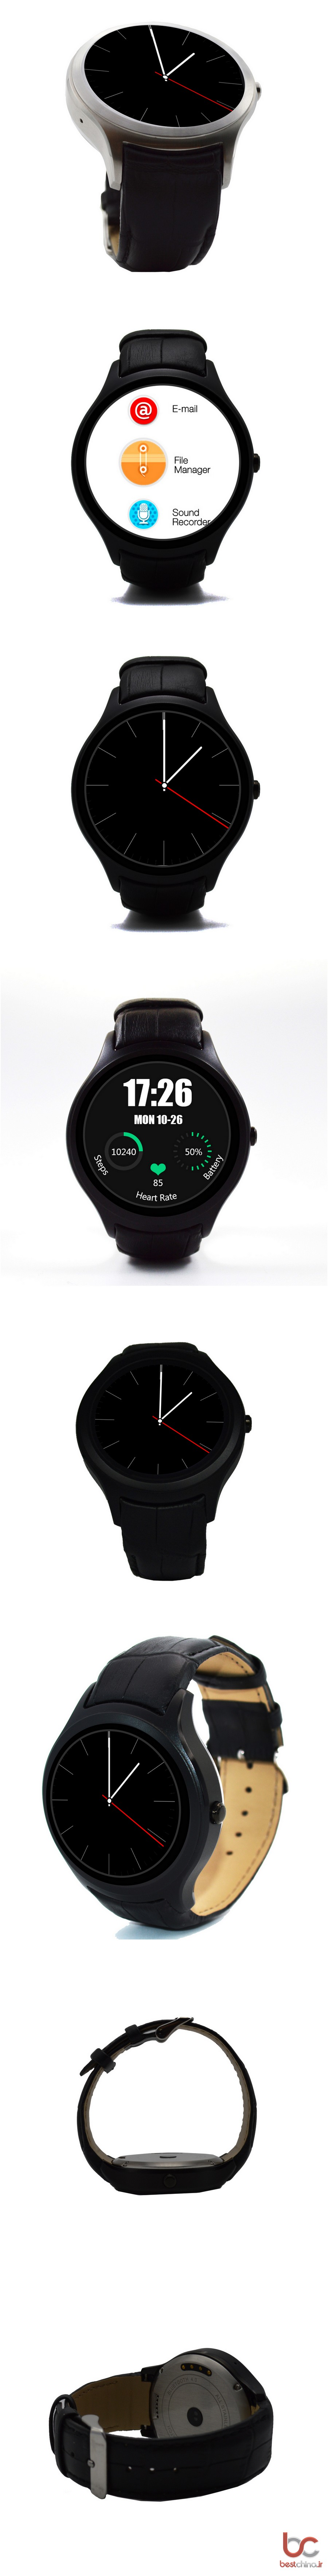 NO.1 D5 smartwatch (4)